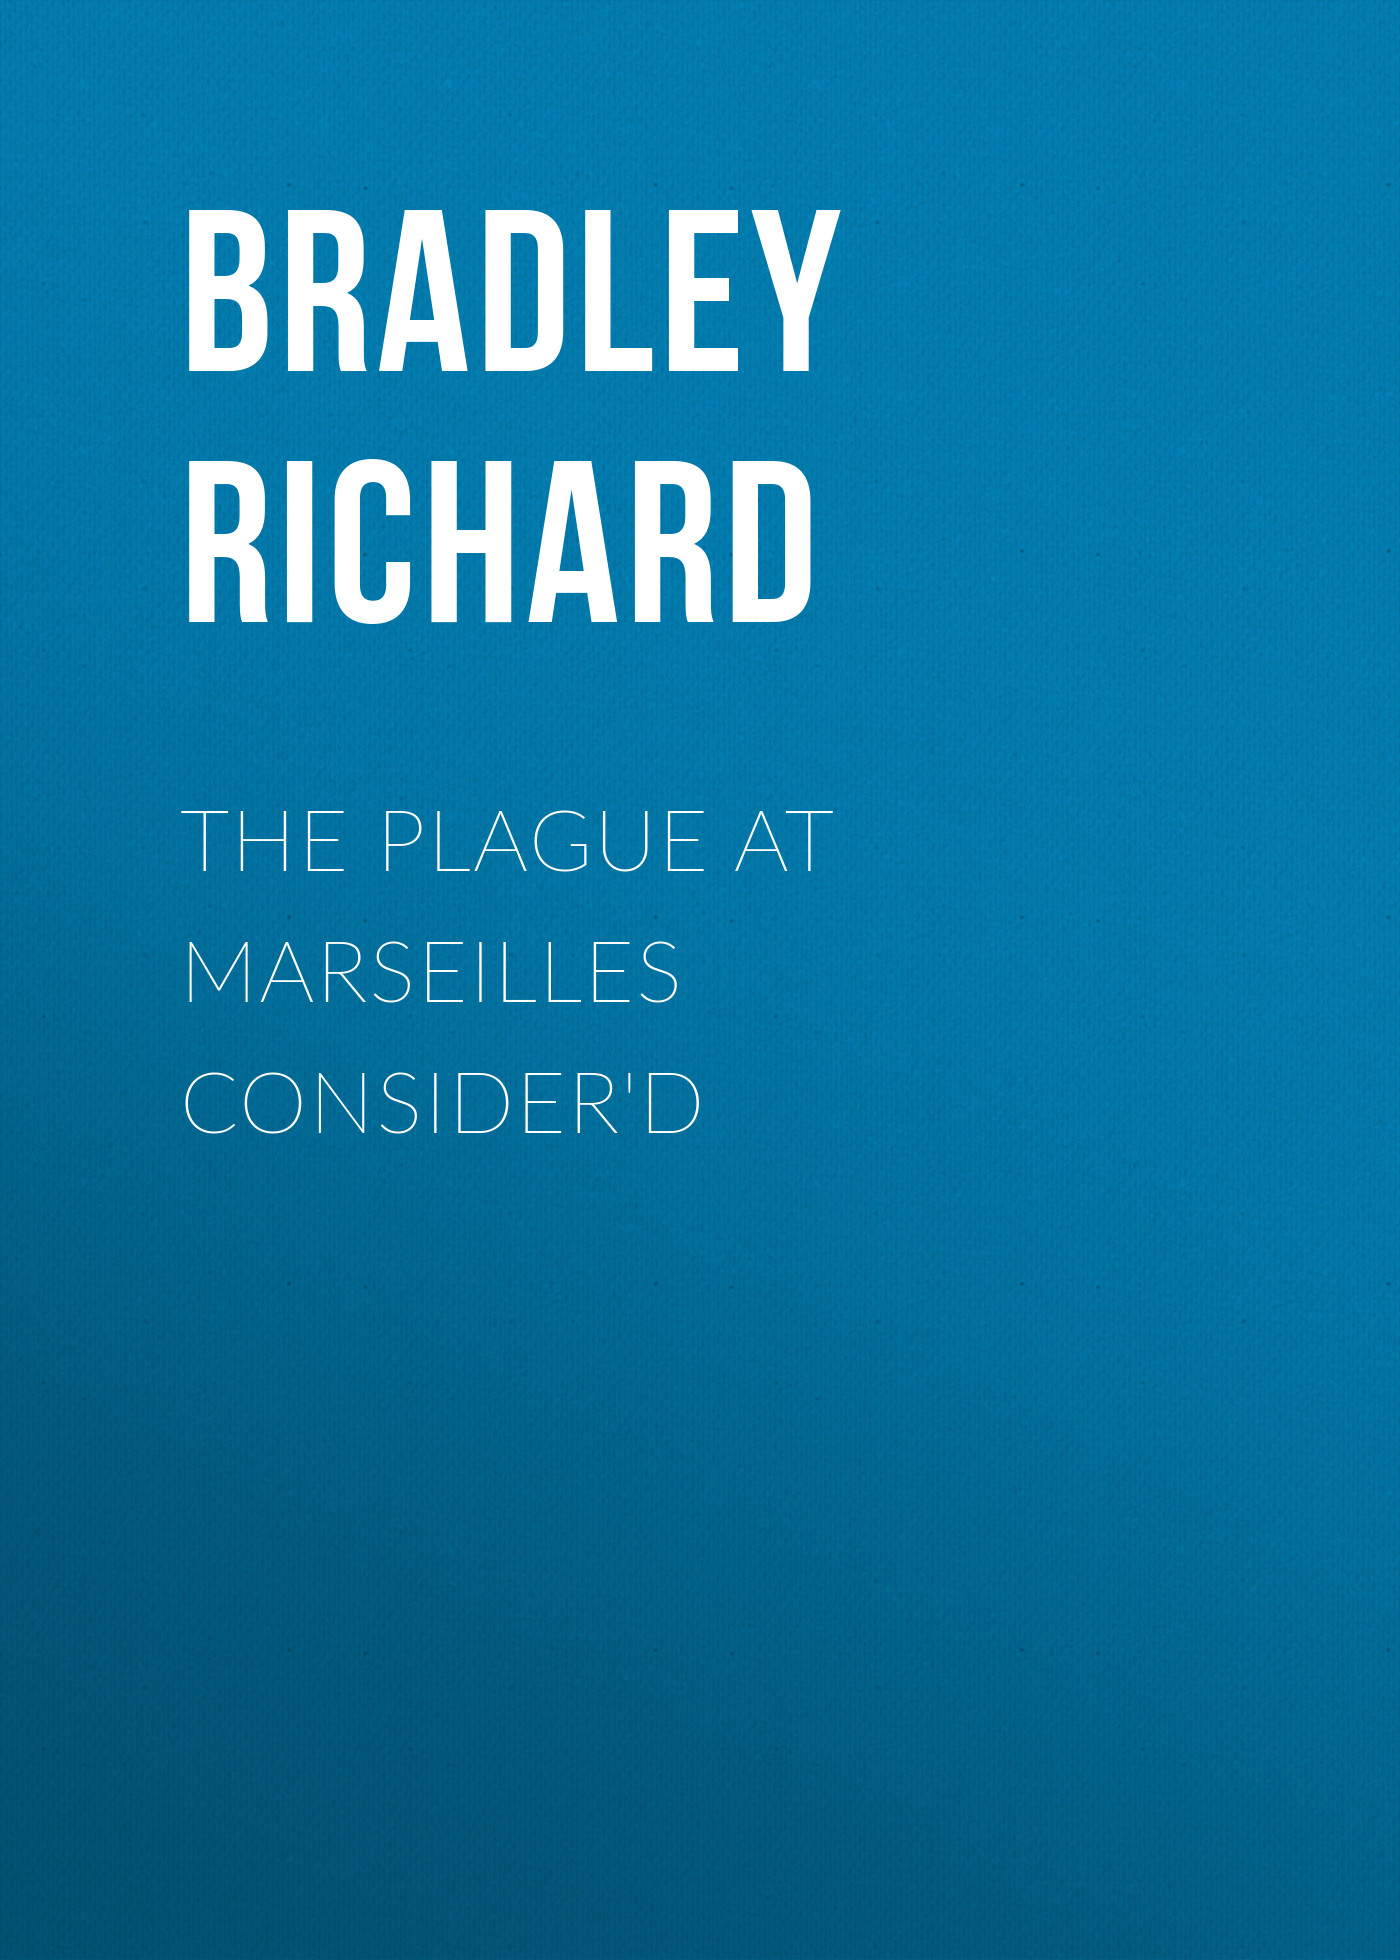 Bradley Richard The Plague at Marseilles Consider'd richard grayson lunch at junior s